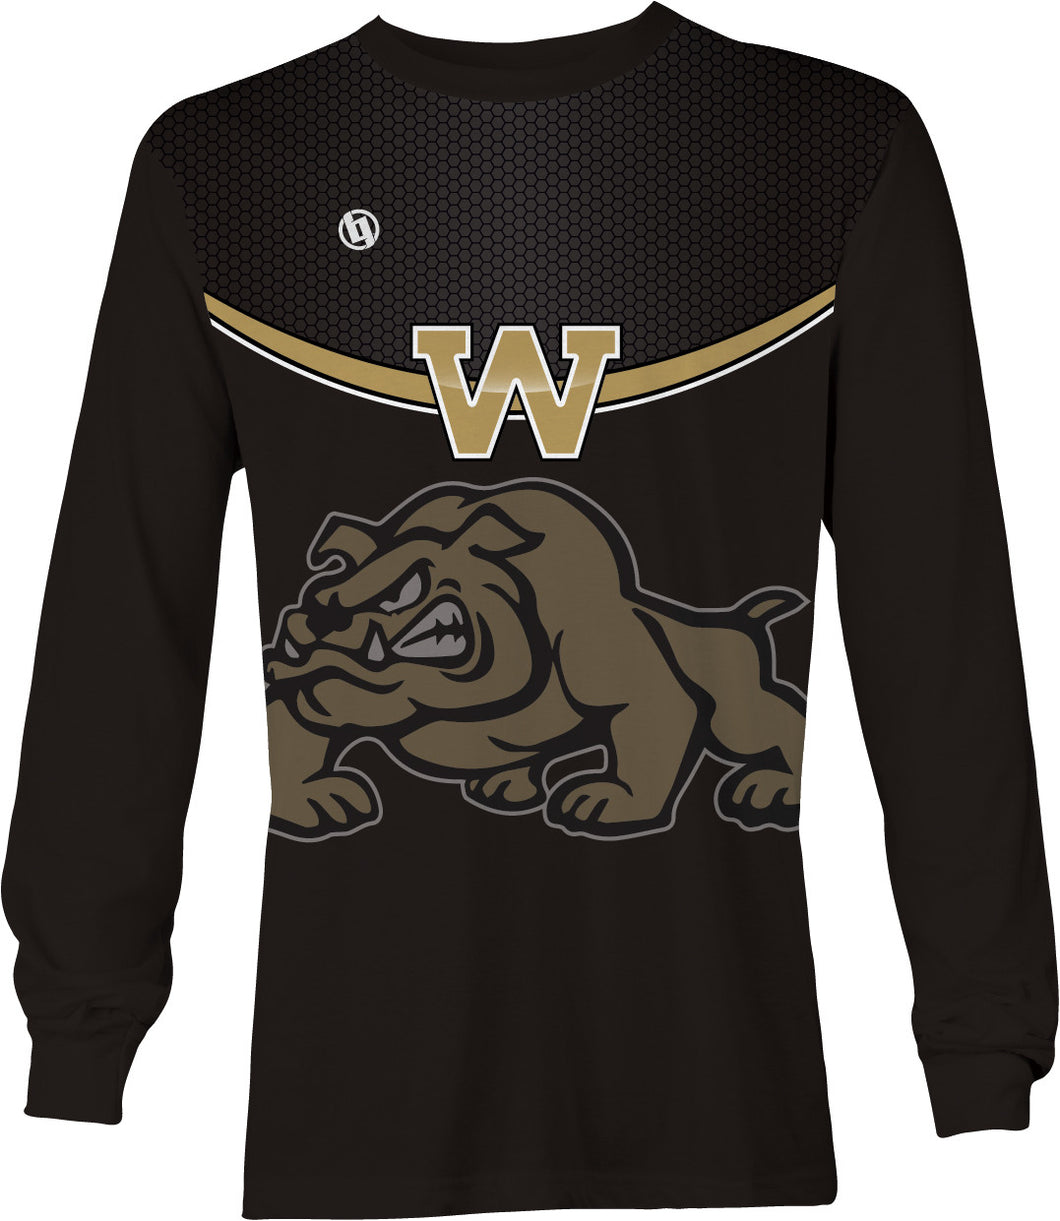 Big Game Long Sleeve Big Game Dye Sublimated Performance Shirt